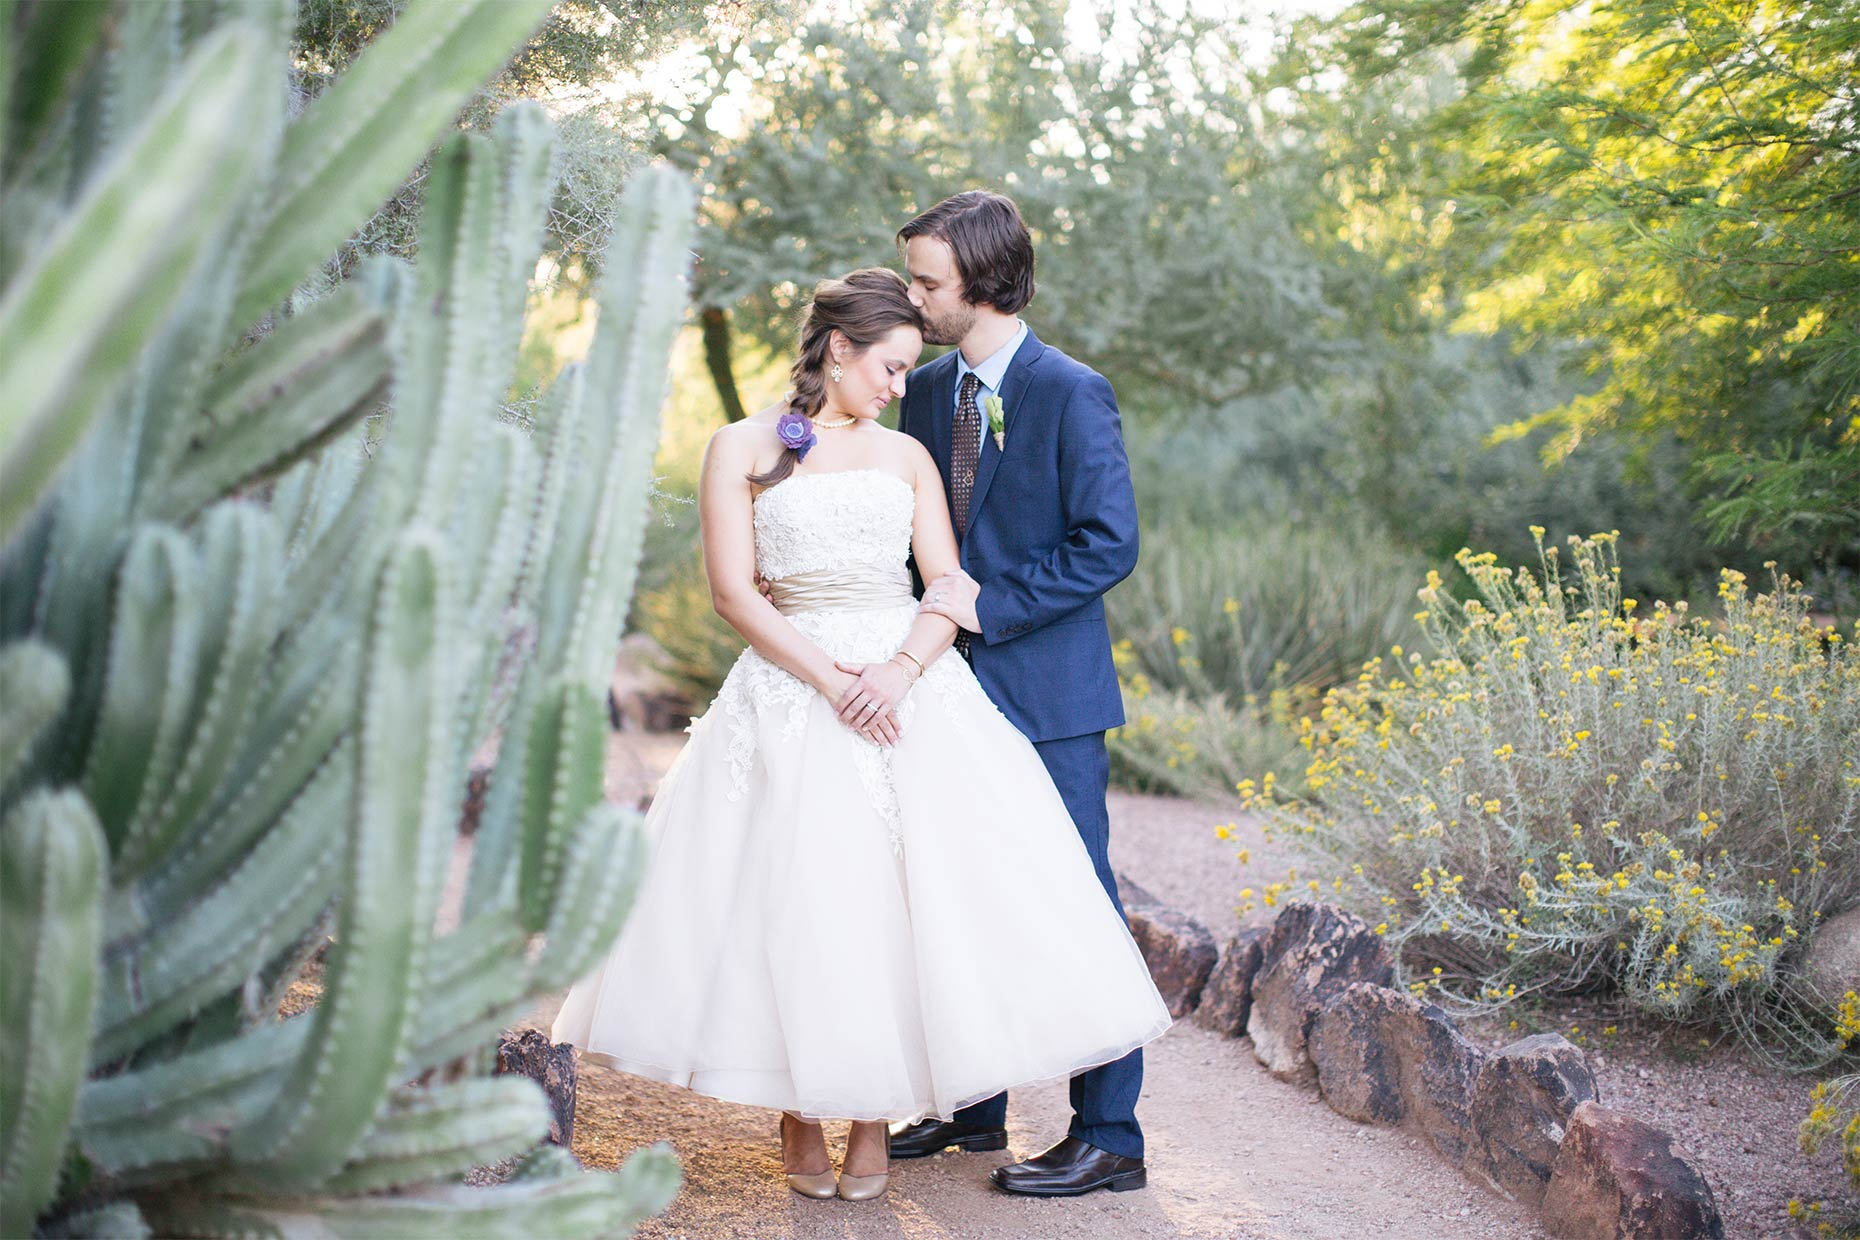 destination wedding Pheonix AZ omaha wedding photographer024